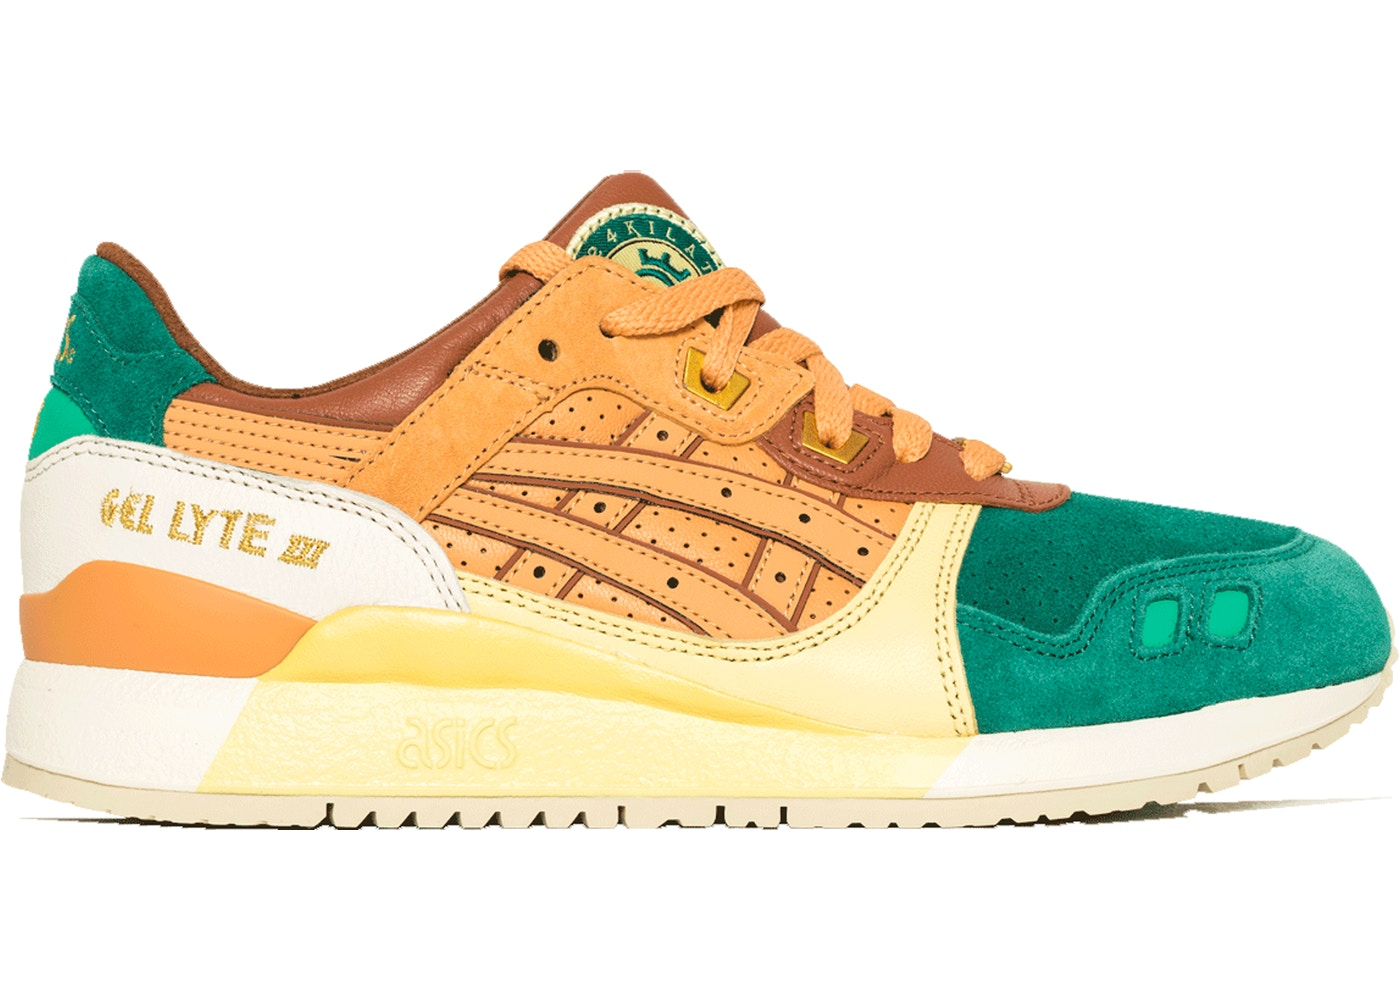 Asics Gel Lyte III 24 Kilates Express